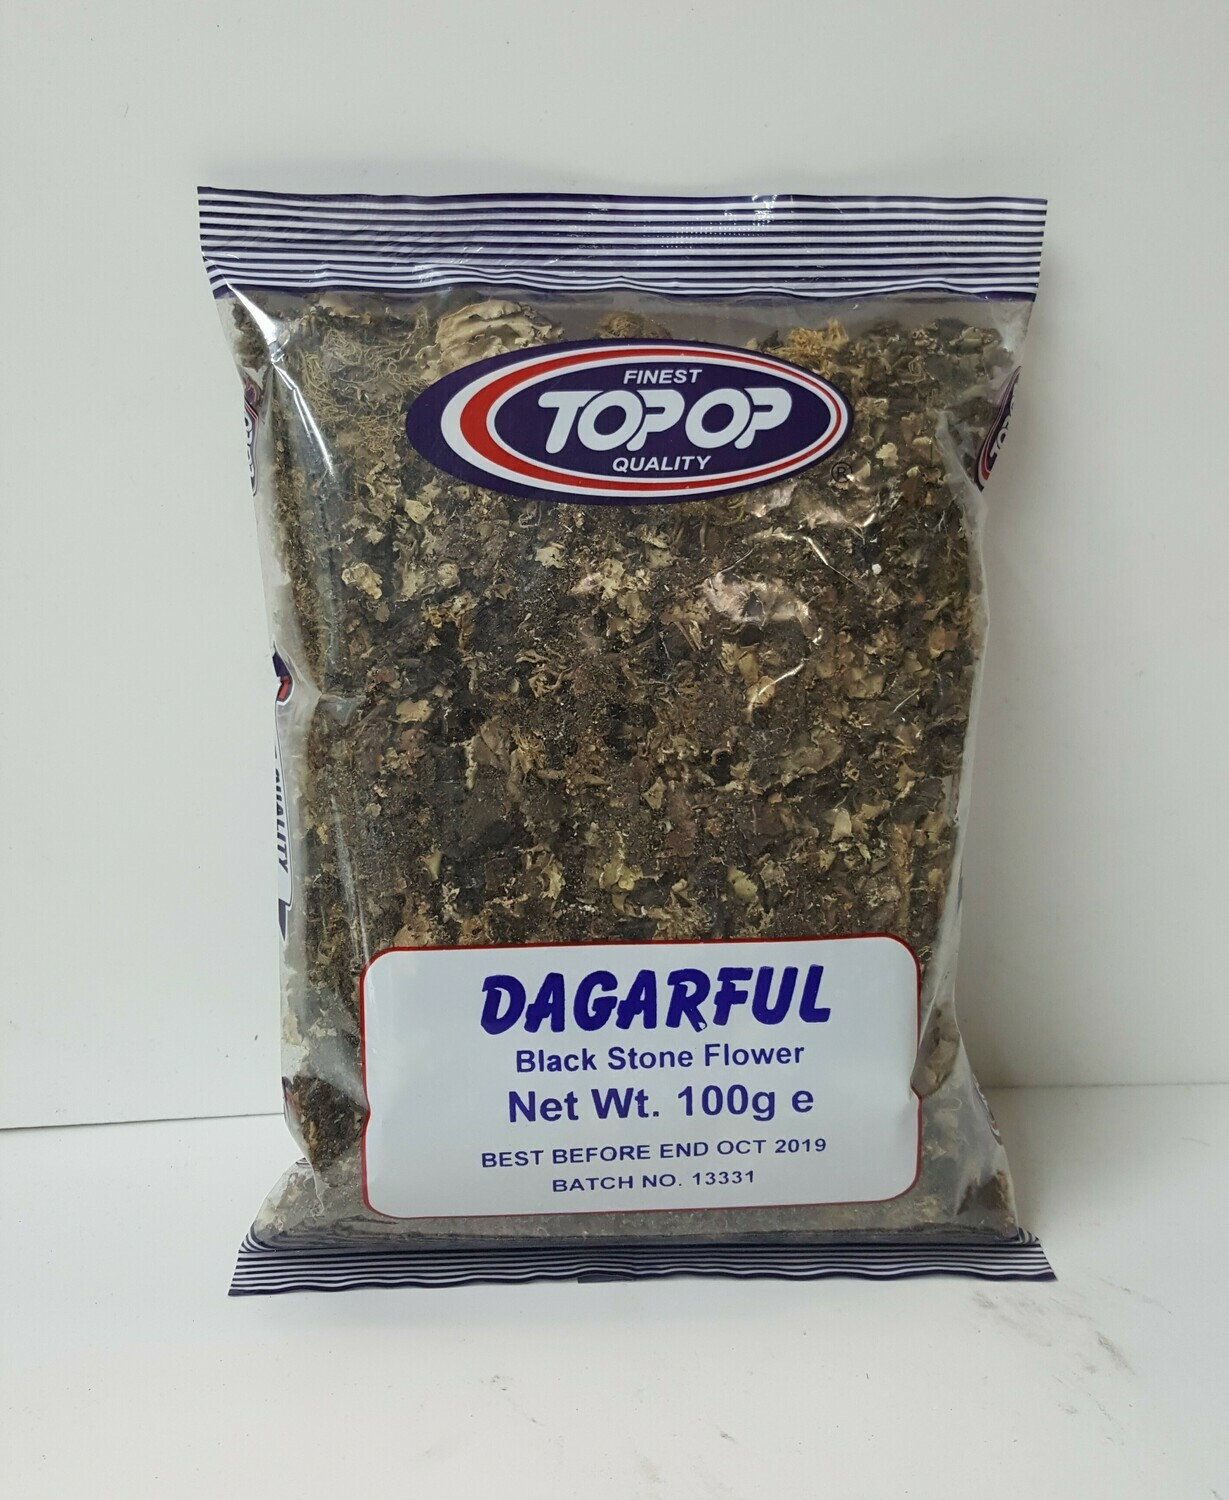 Dagarful Black Stone Flower TOP OP 100 g